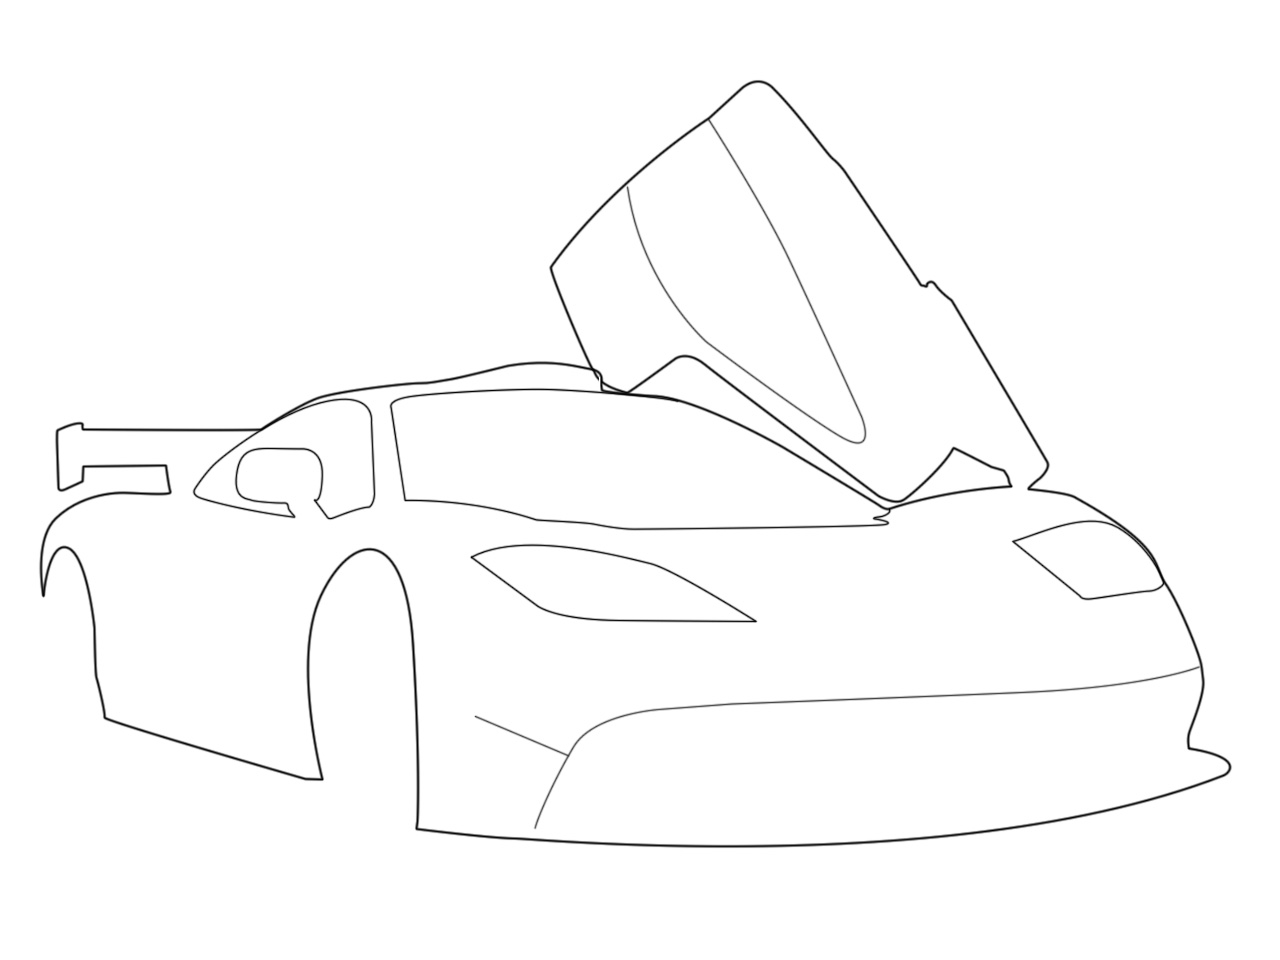 16 Photoshop Drawing Cars Images